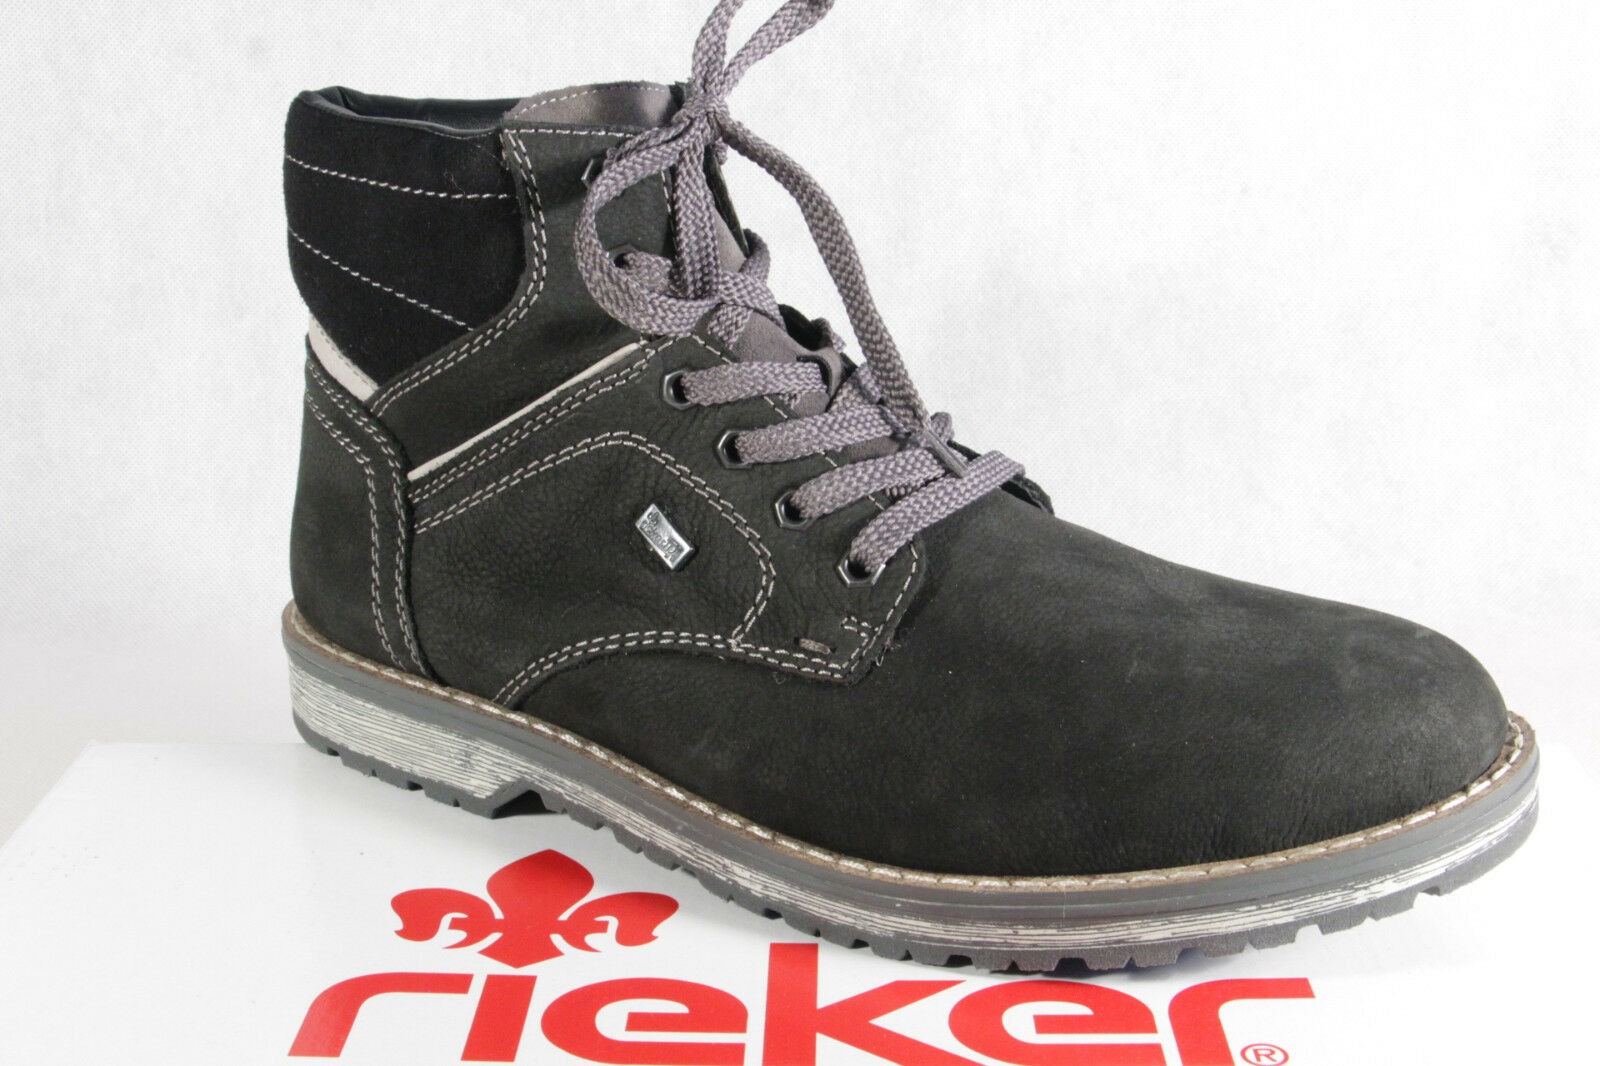 Rieker Men's Laced Boots Black Grey Leather Tex Real Lamb Wool New